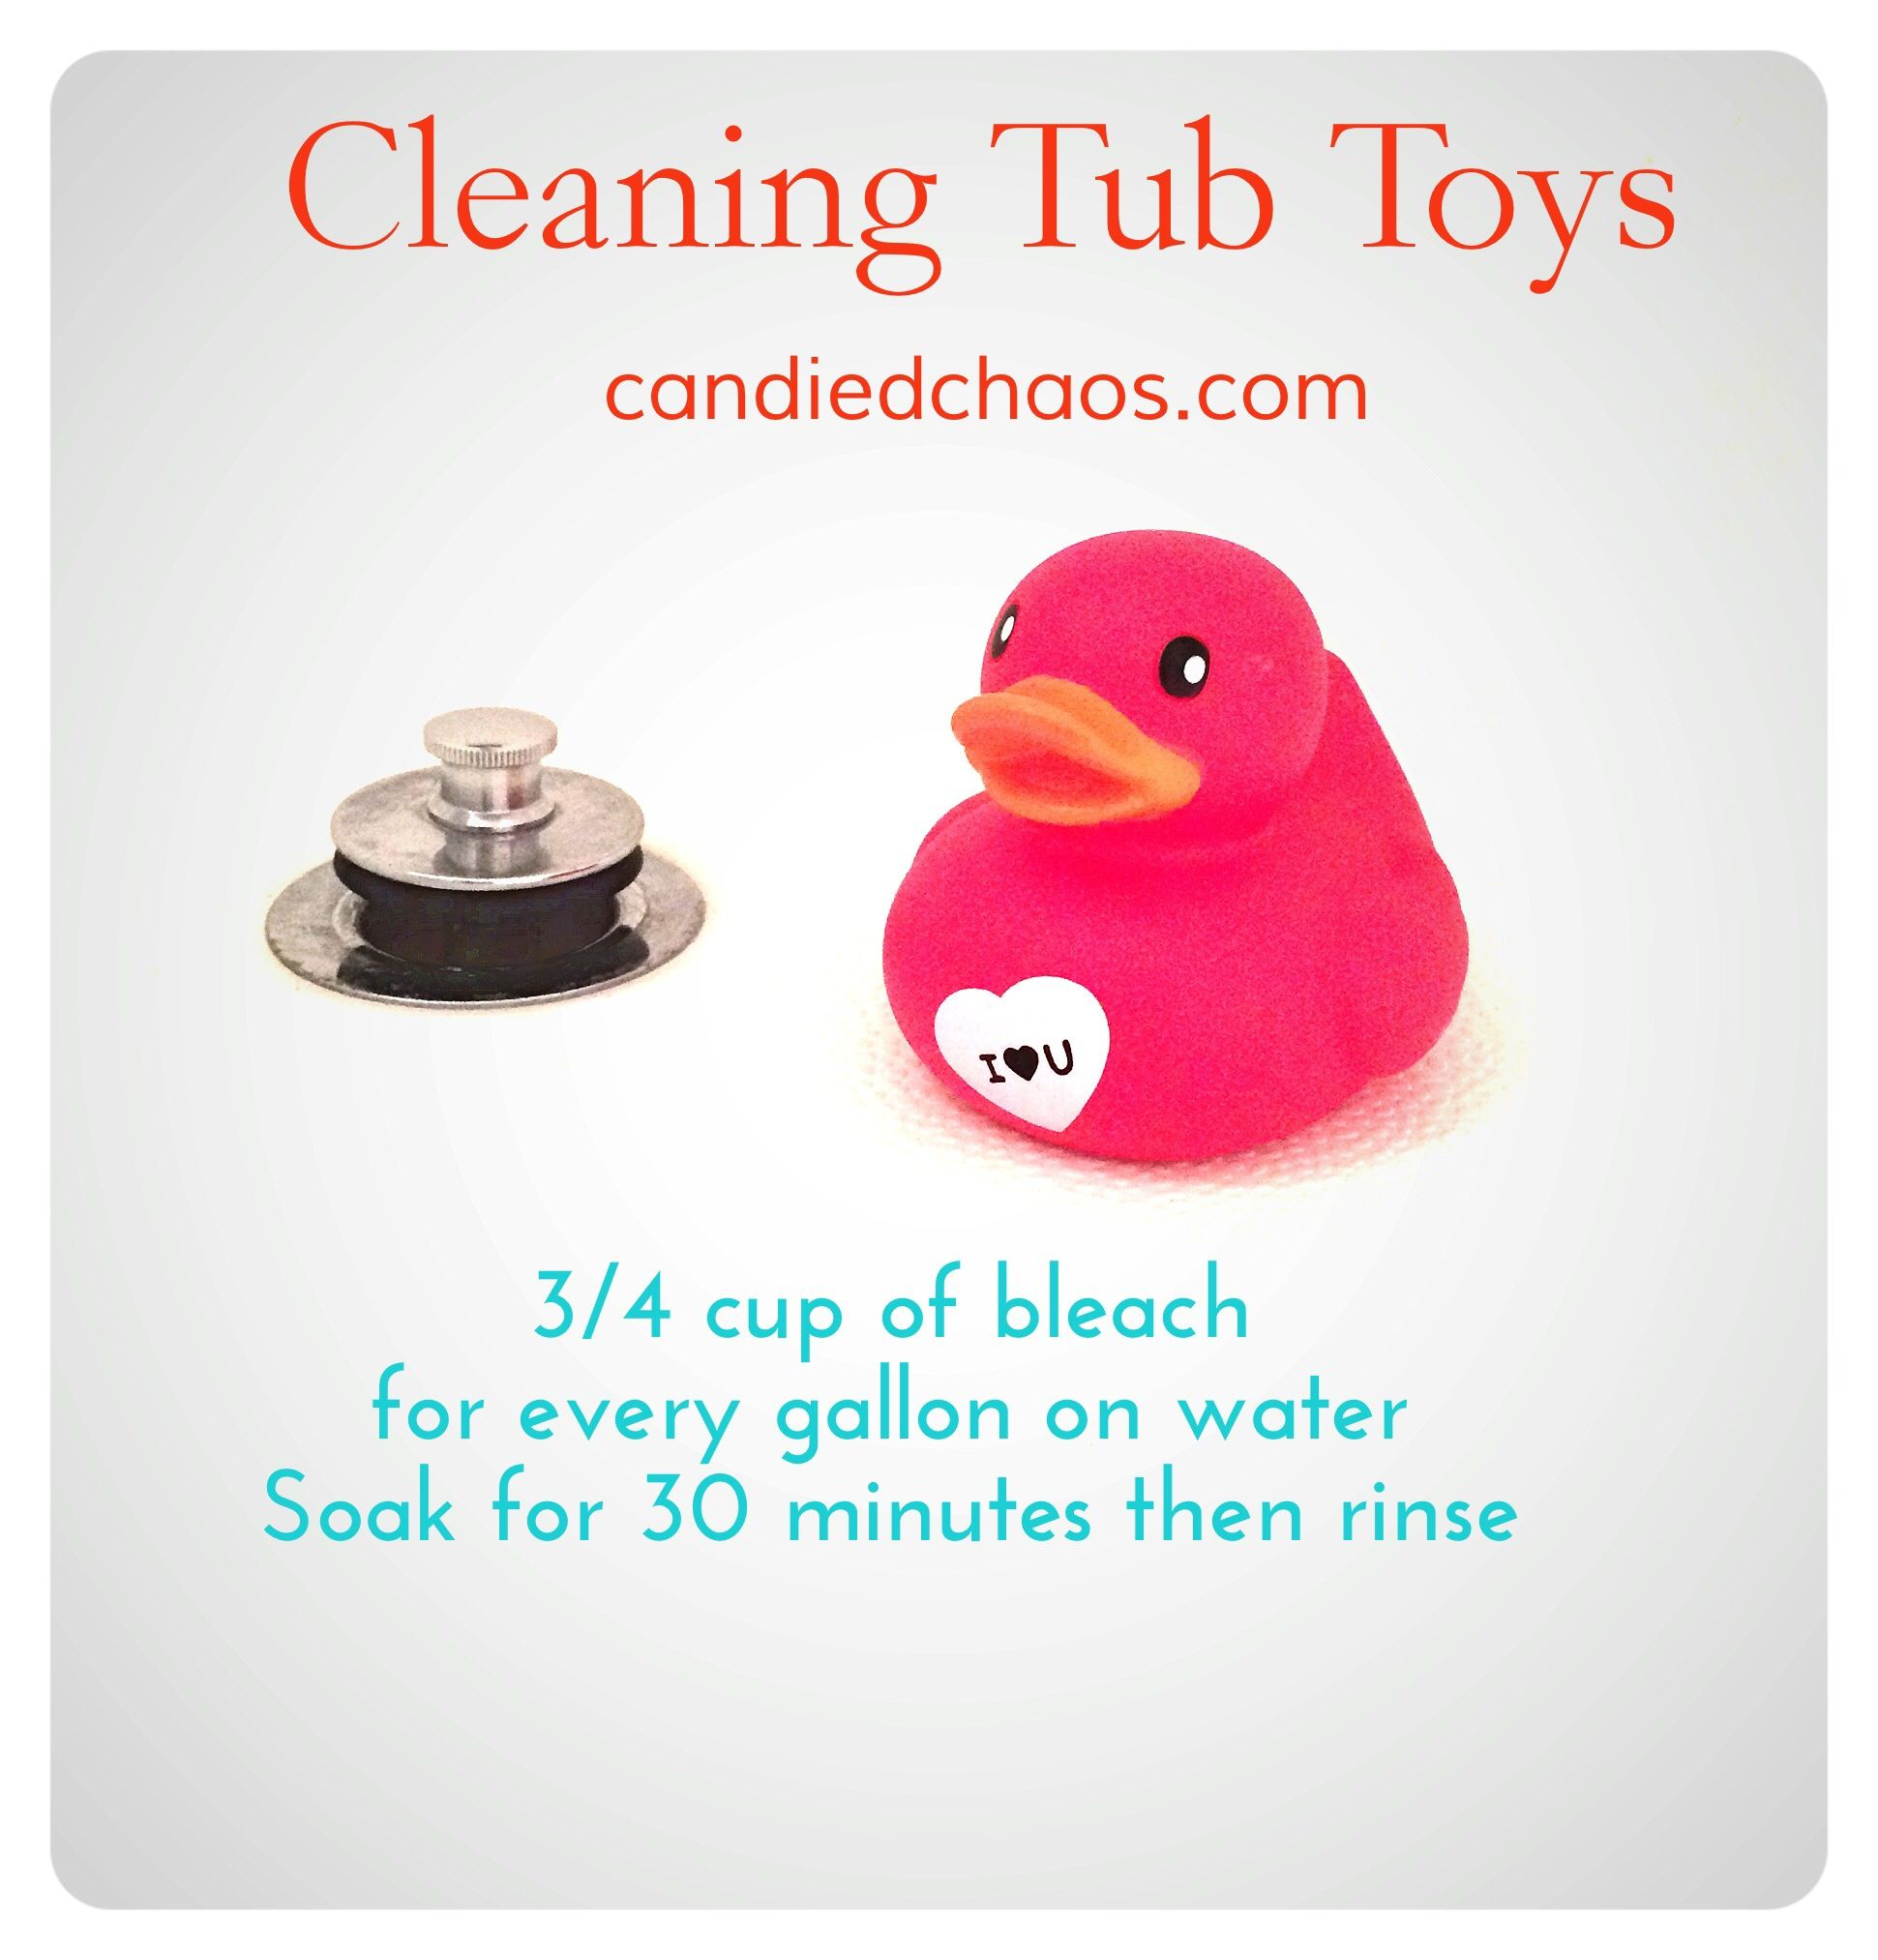 Cleaning Tub Toys